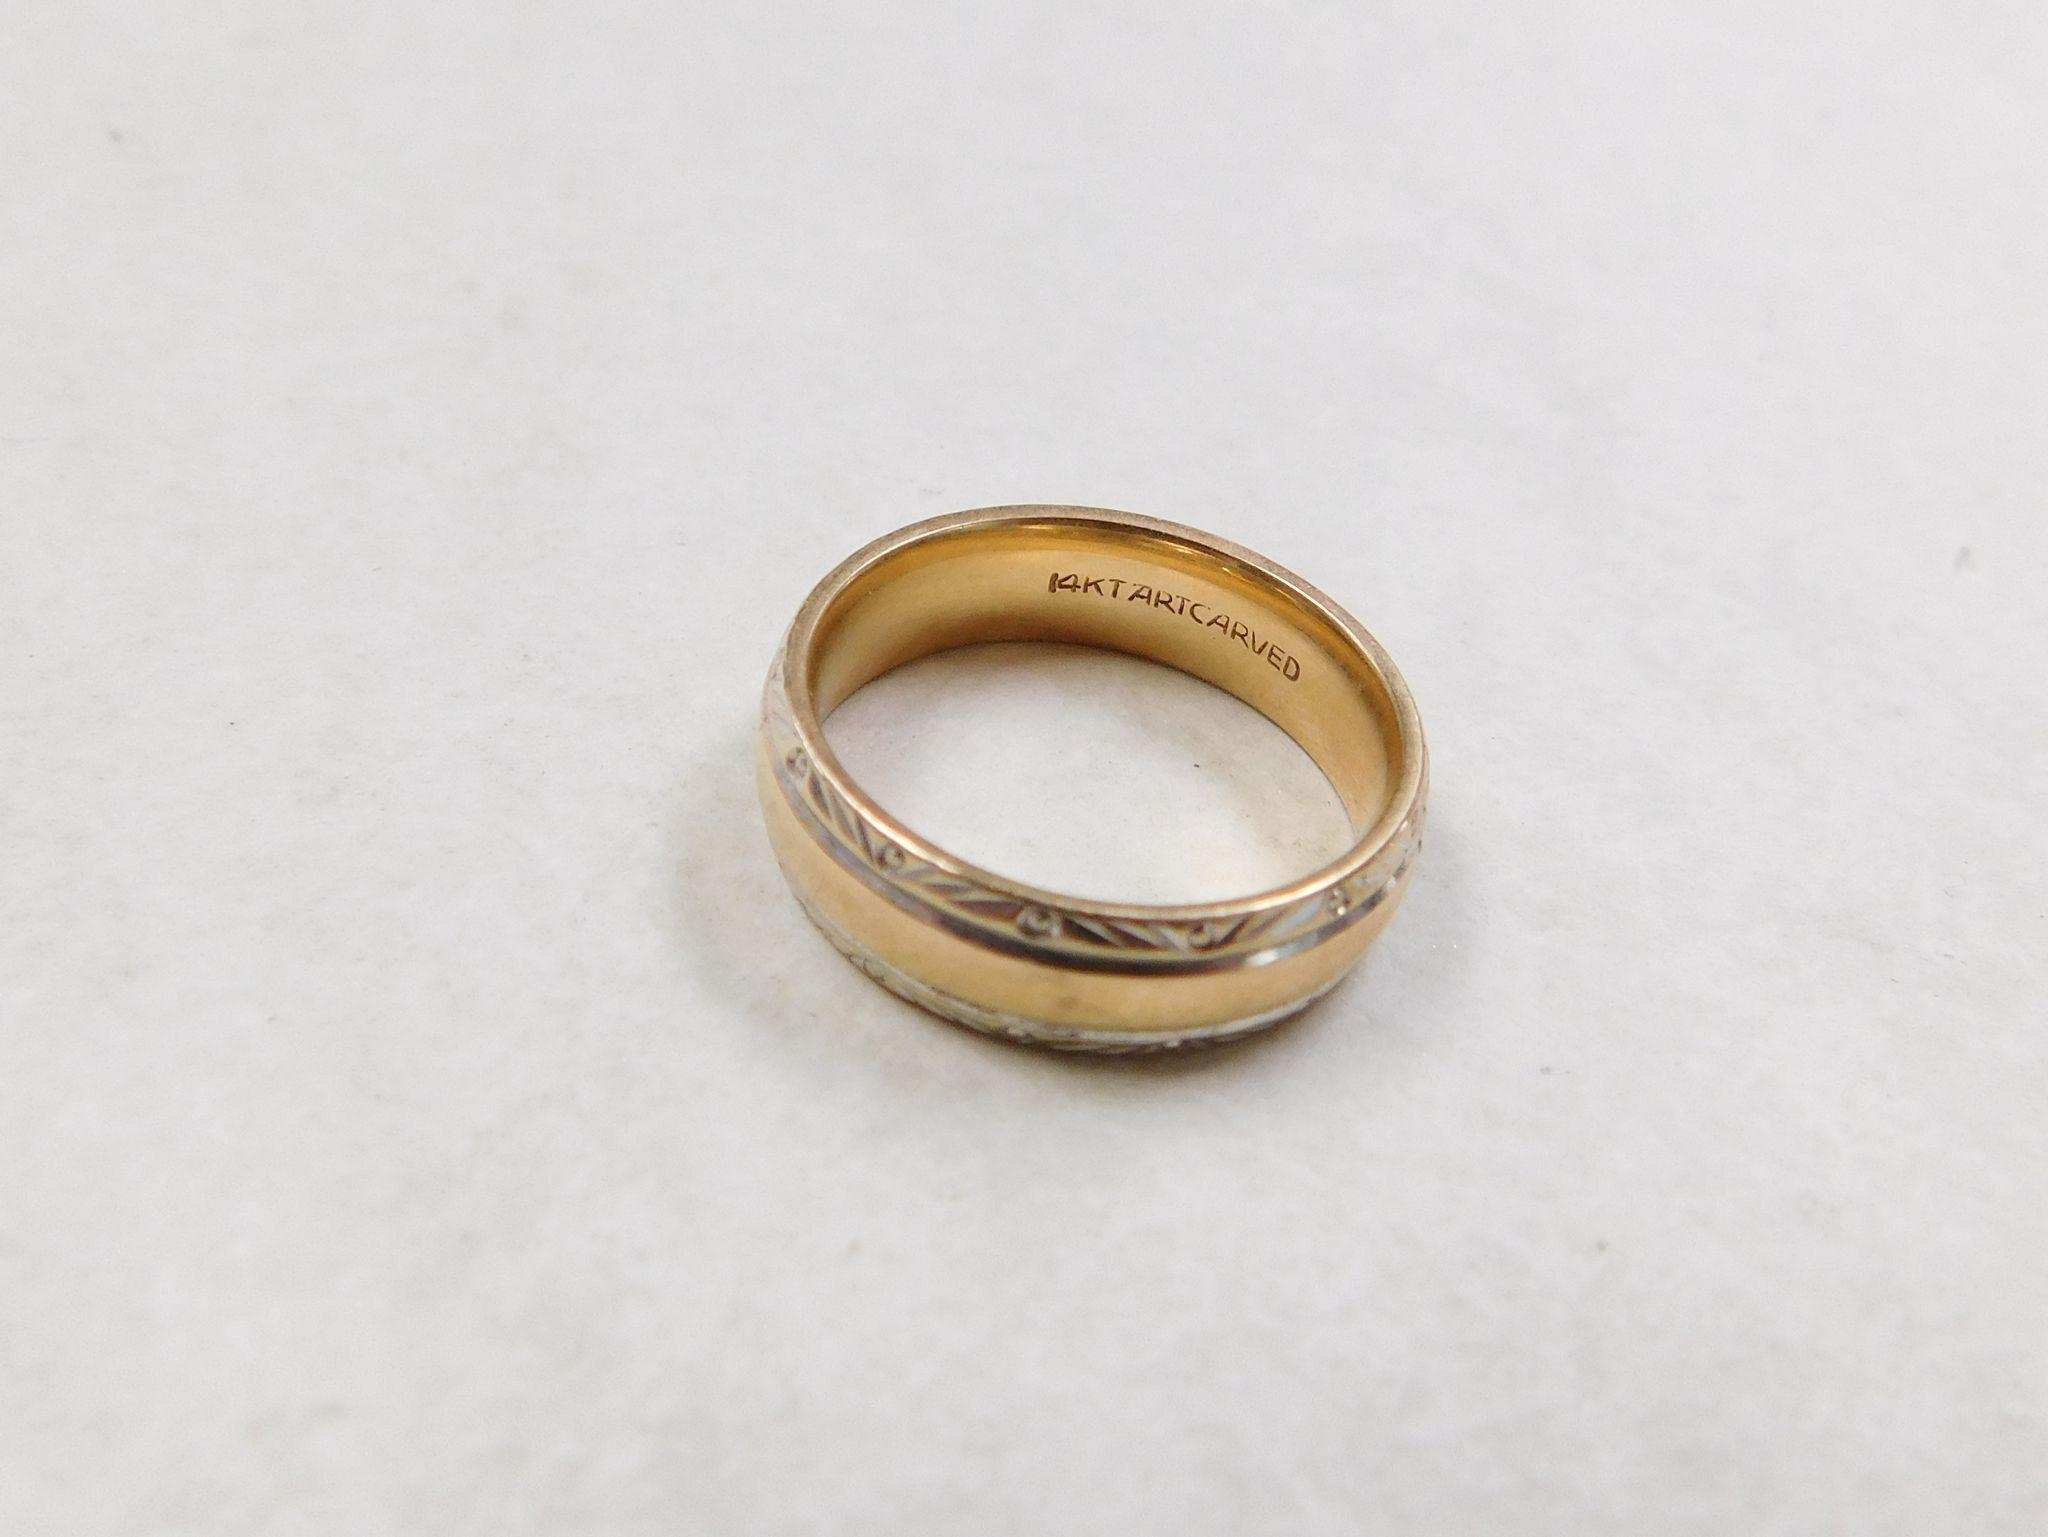 Vintage 14k Gold Two Tone Wedding Band Ring From